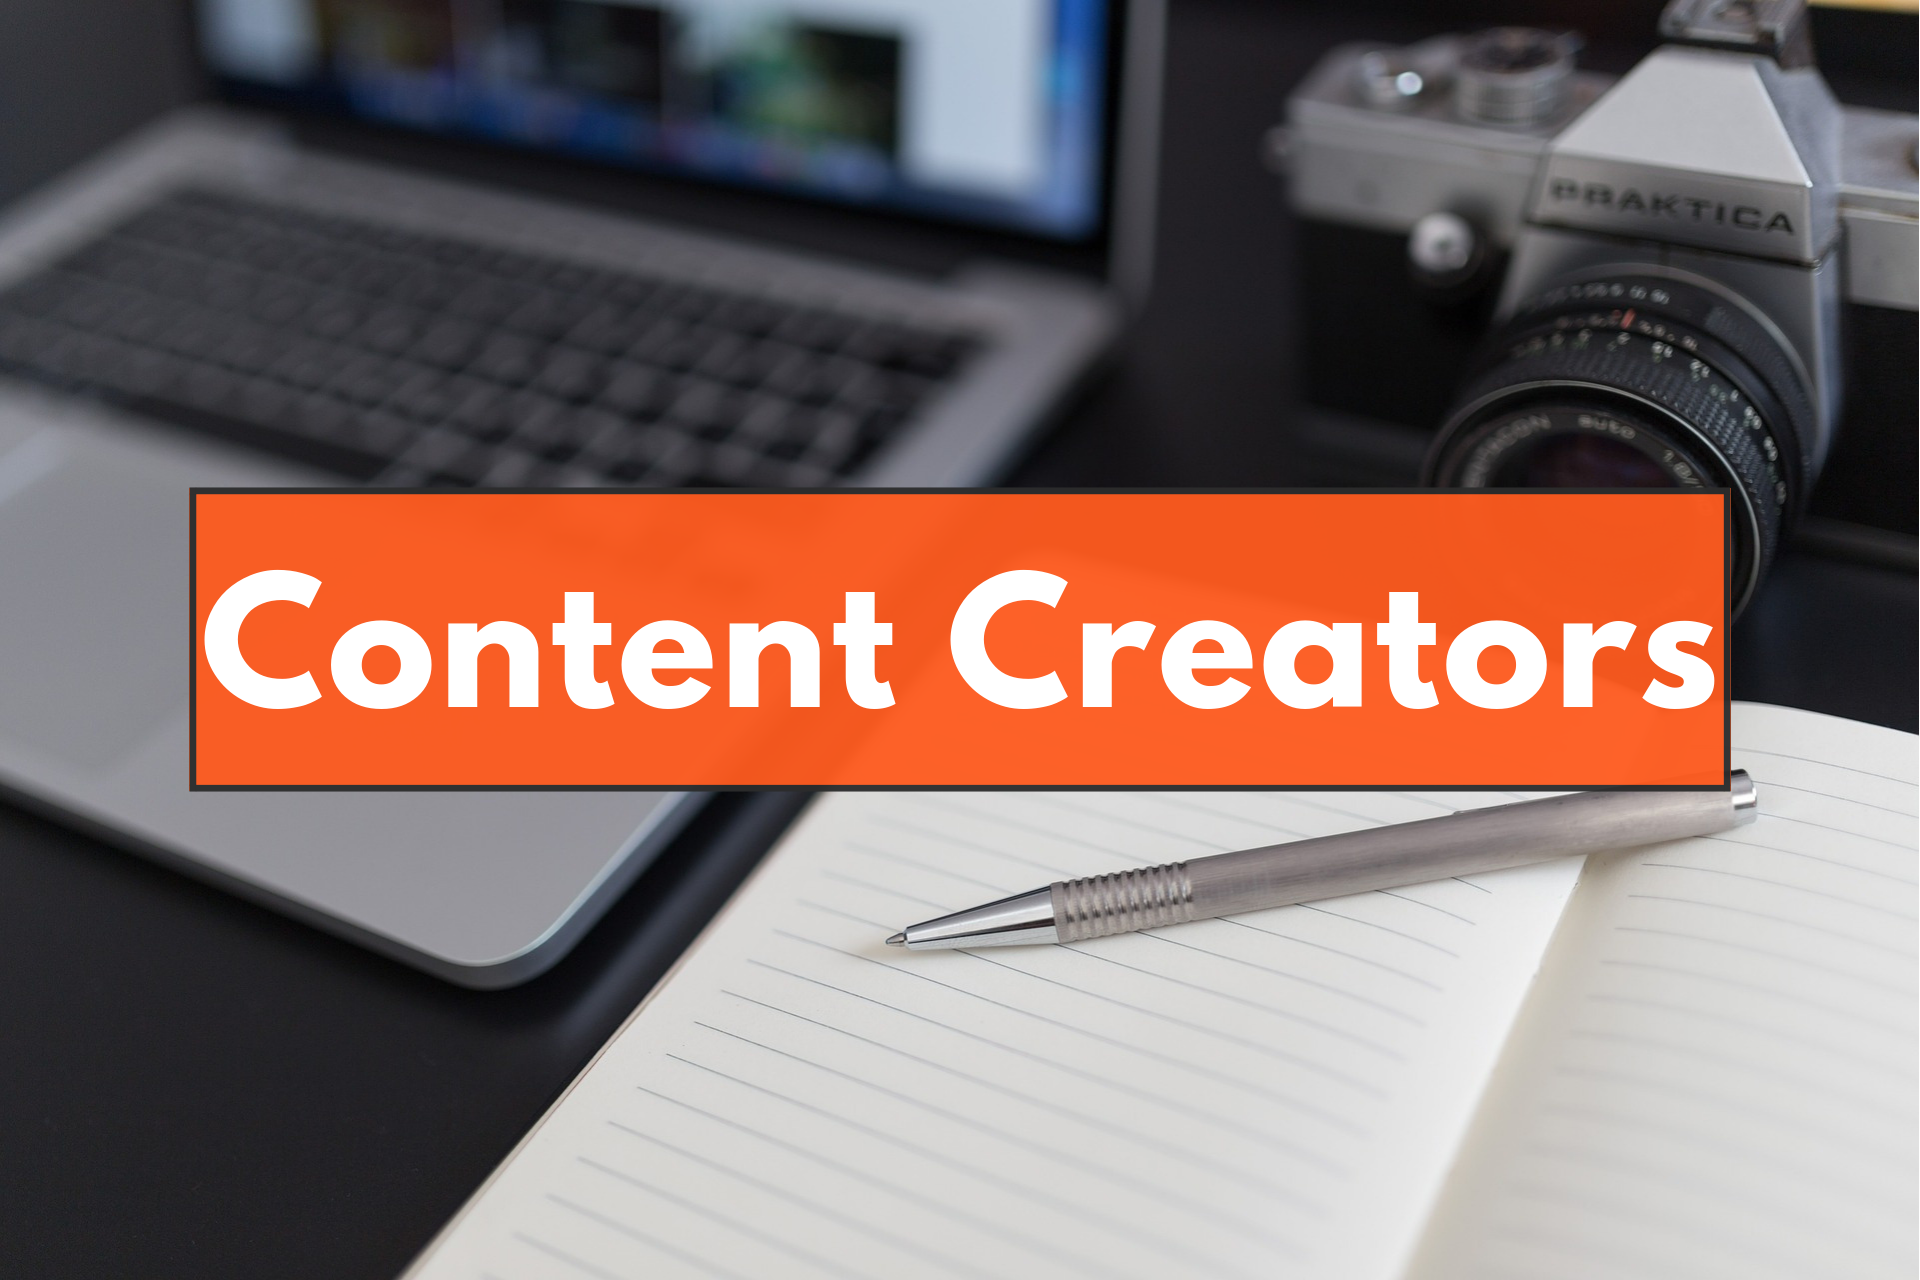 Resources for Content Creators